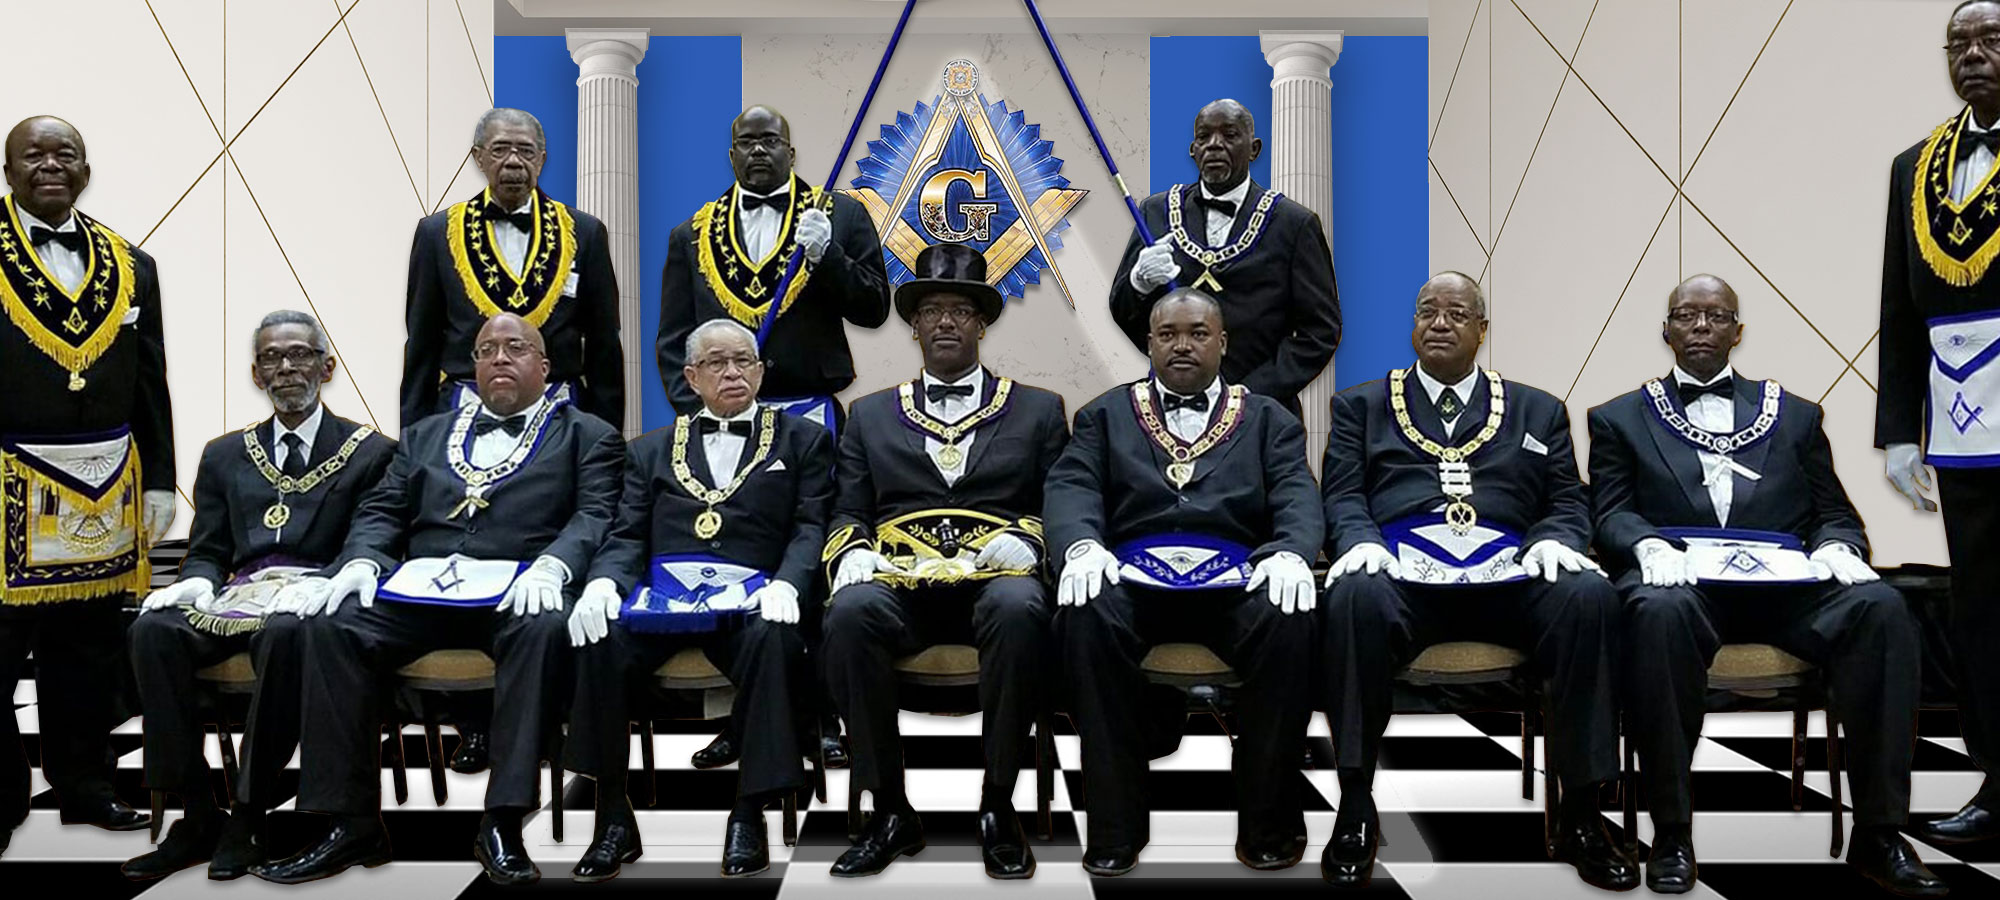 2017-2018 Grand Lodge Officers